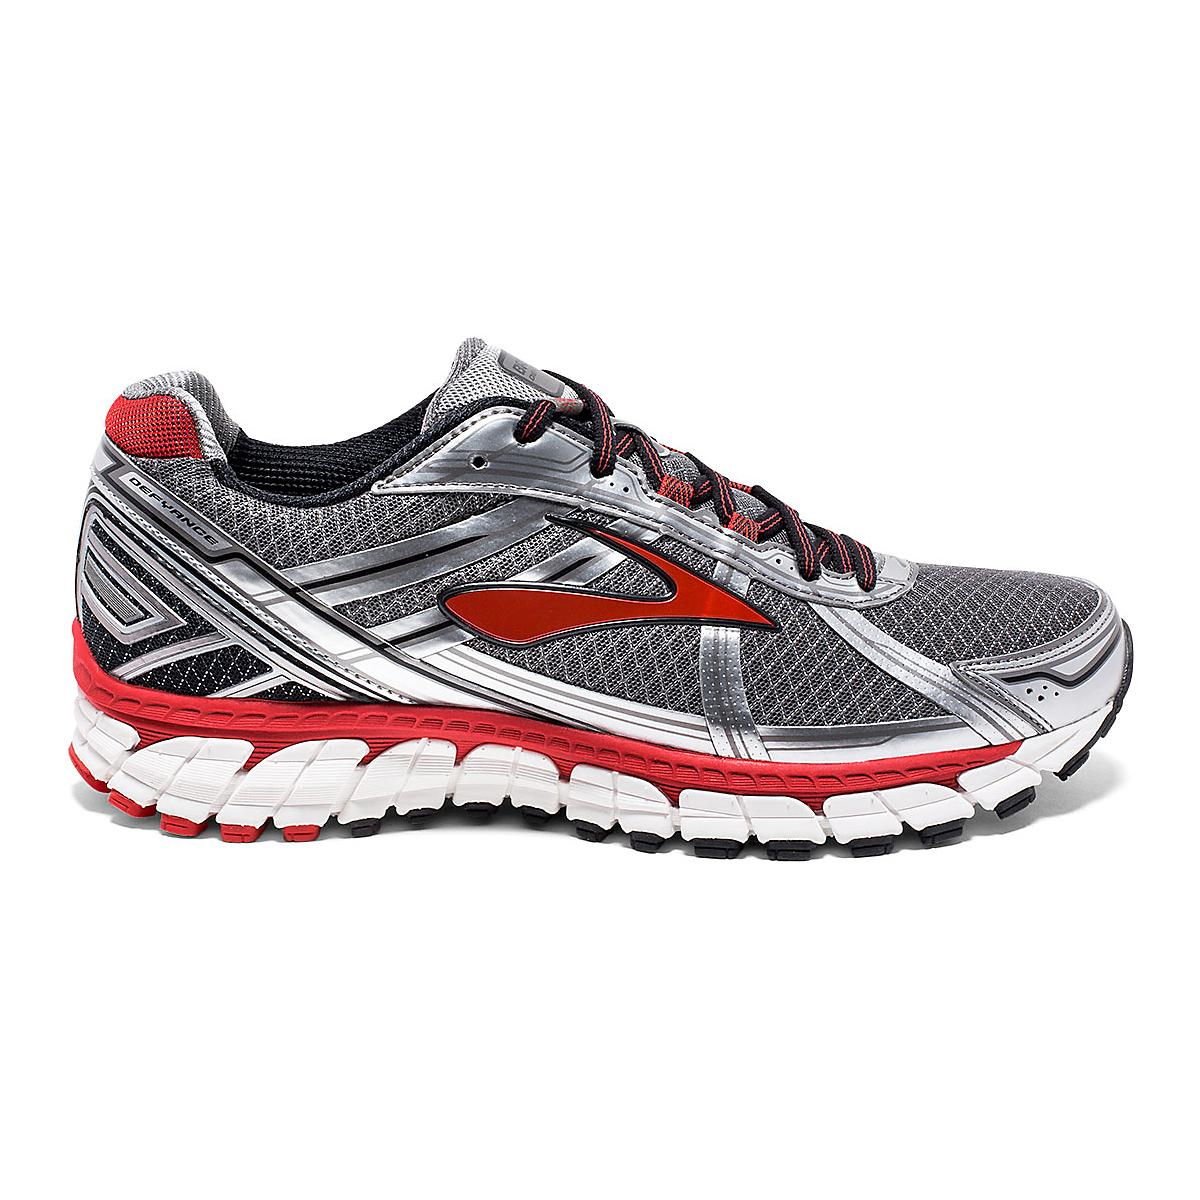 13d6143f648 Mens Brooks Defyance 9 Running Shoe At Road Runner Sports